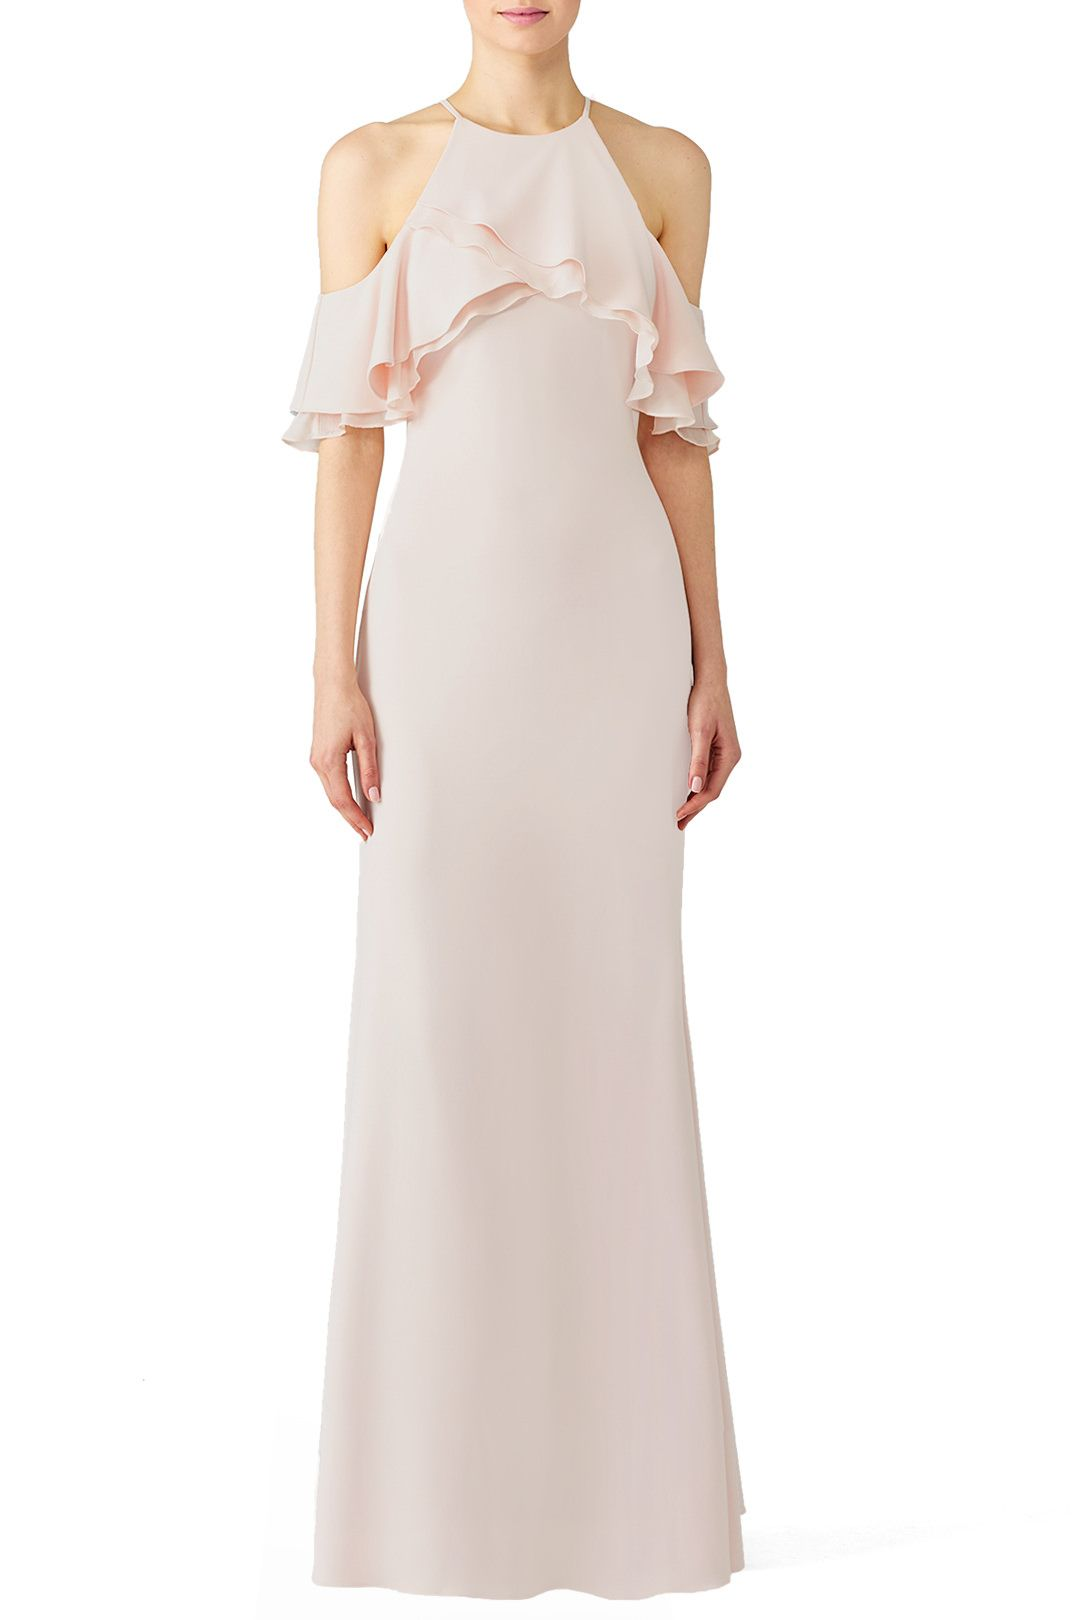 Rent Blush Crossover Gown by Badgley Mischka for $115 only at Rent ...